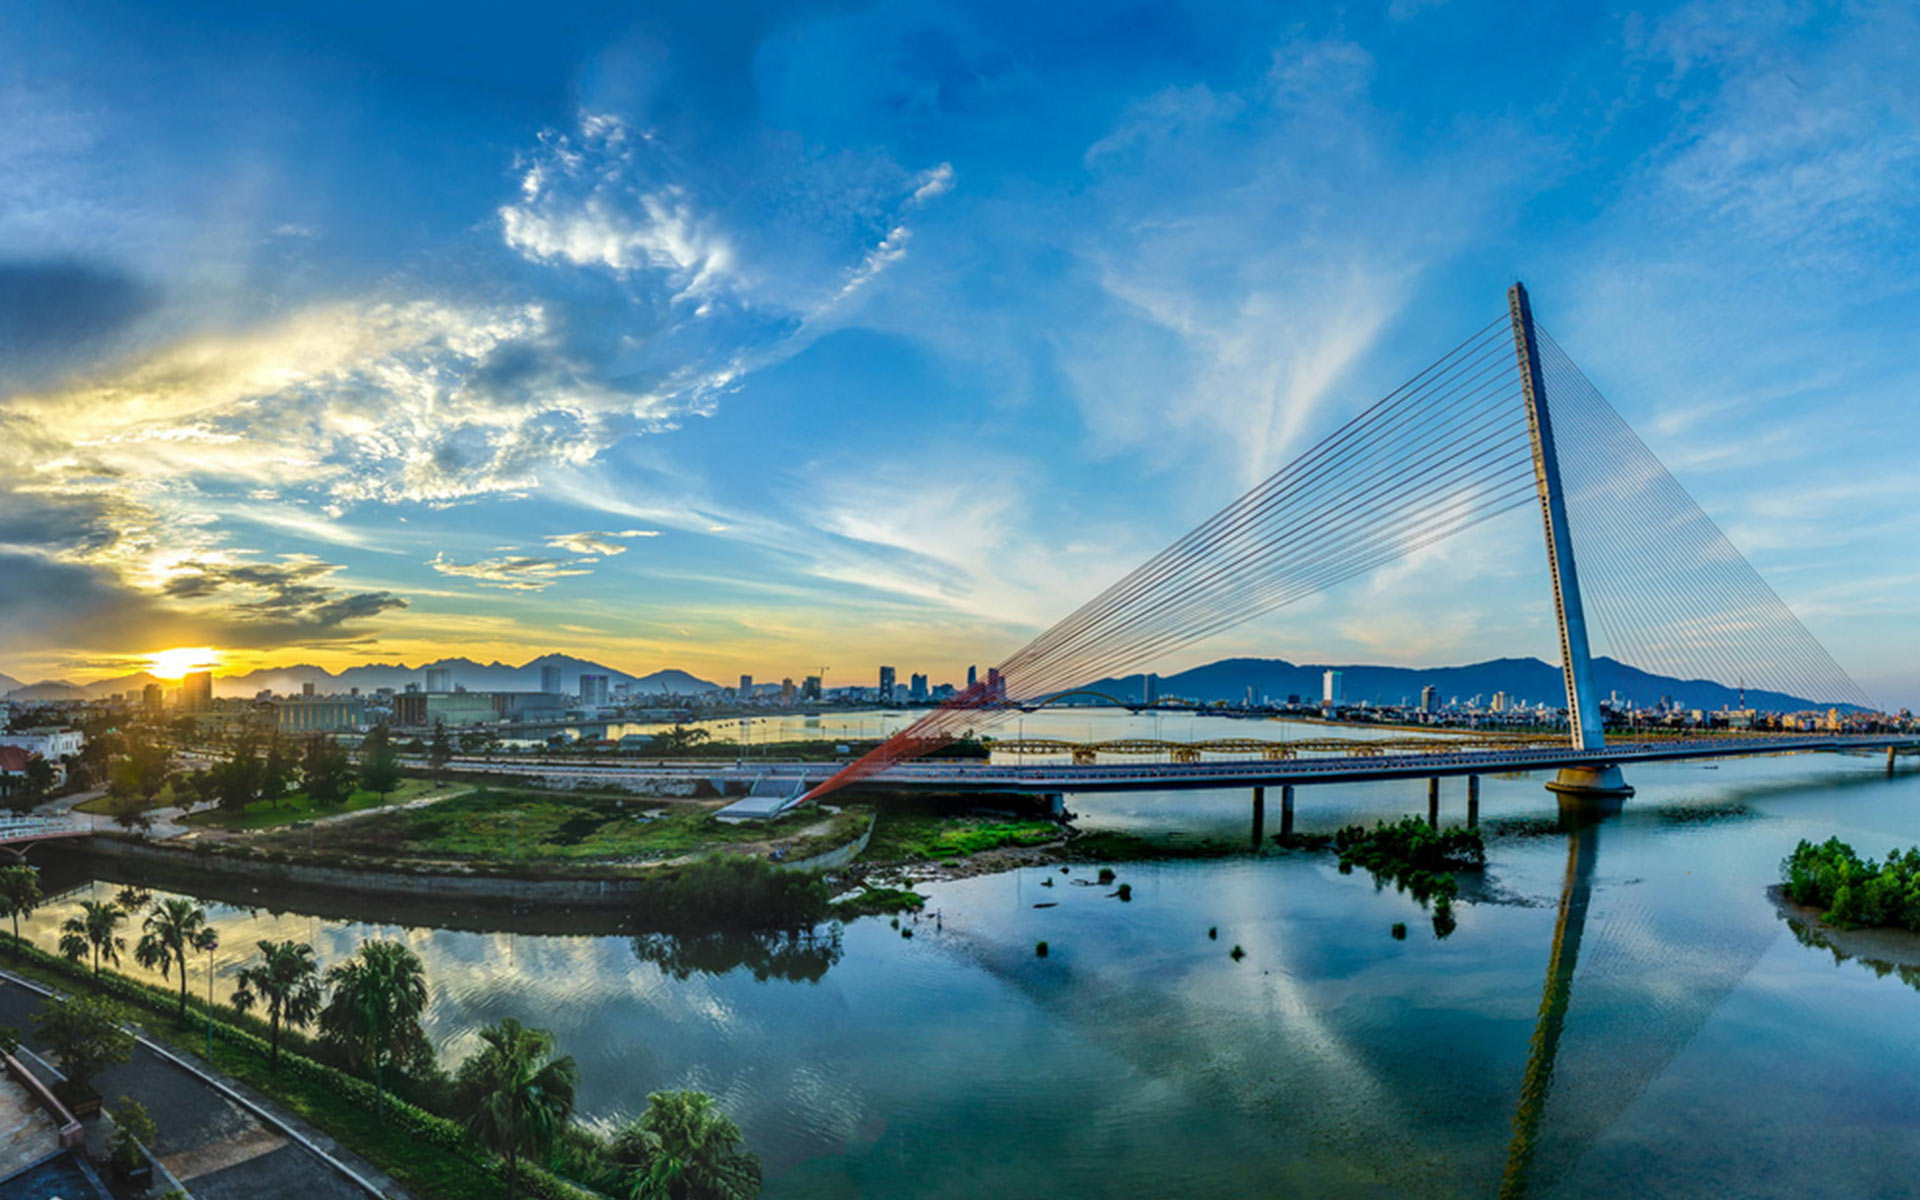 Tran Thi Ly Bridge in Danang City